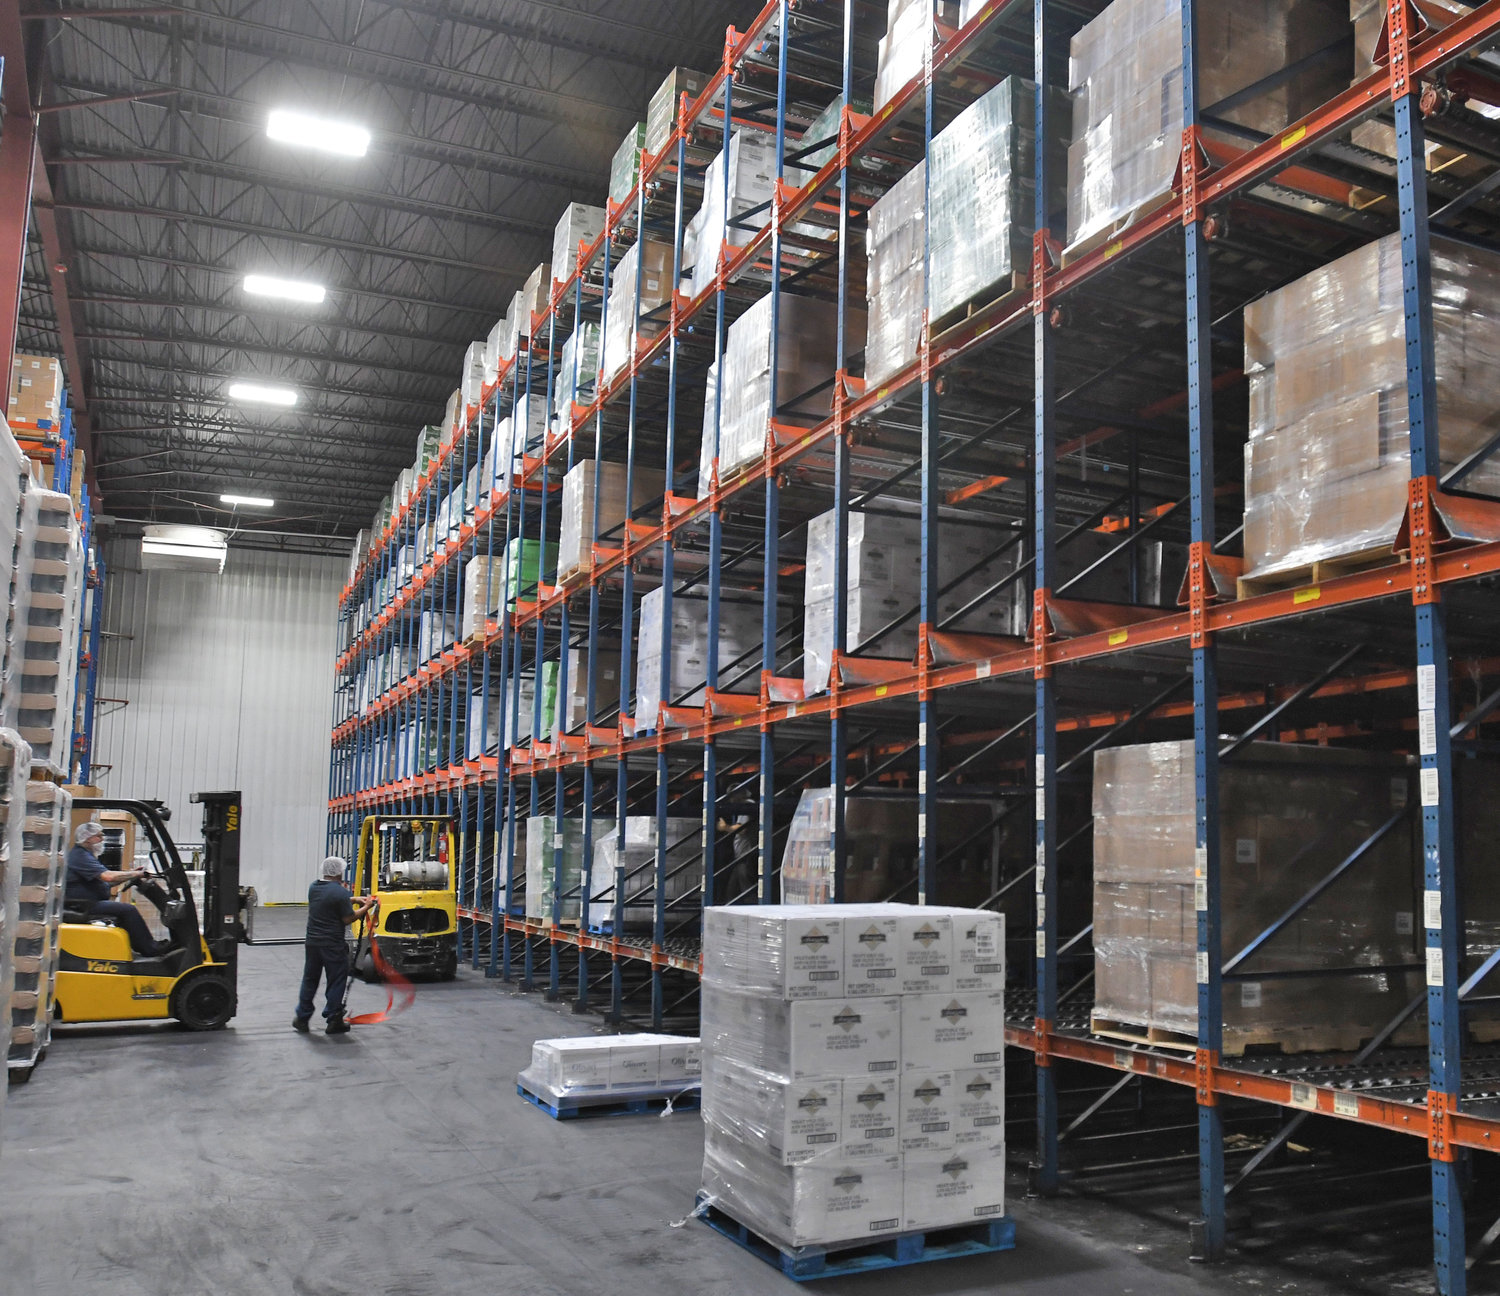 ORGANIZING THE INVENTORY — Various olive oil and related products are assembled in the warehouse at Sovena USA's Griffiss business park facility before being shipped out.